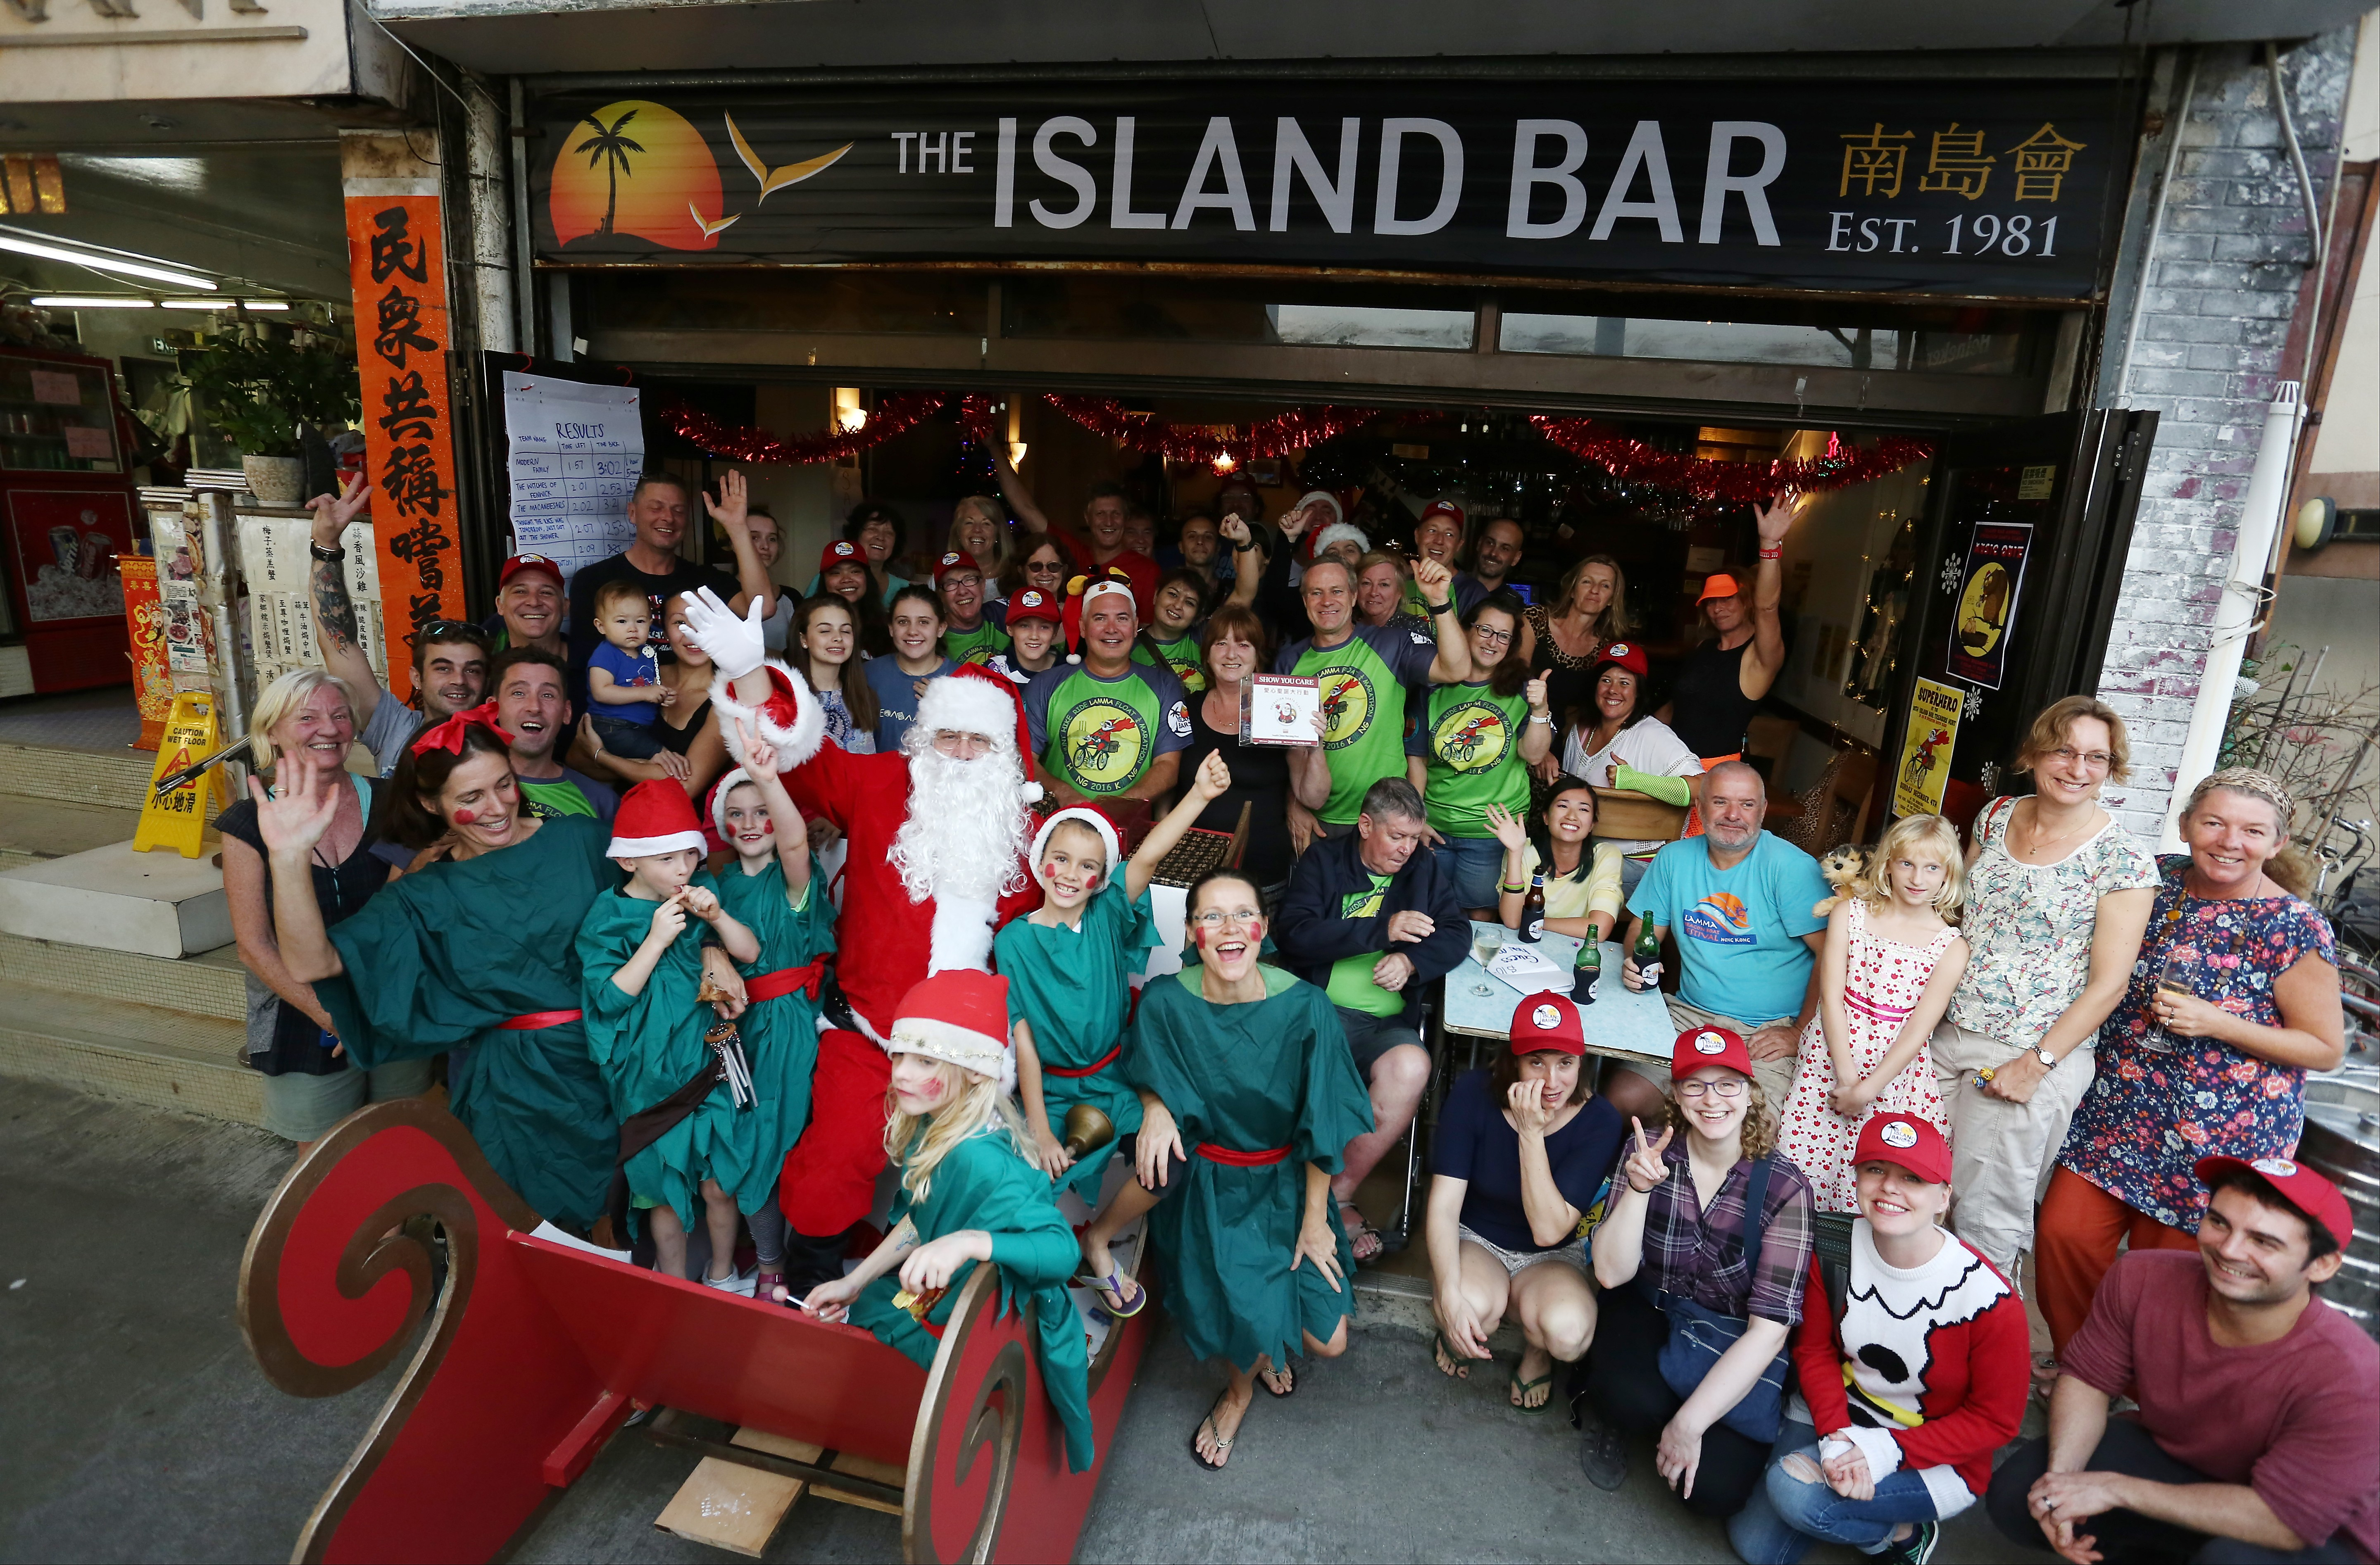 Lamma's famous Island Bar to close its doors after almost 40 years